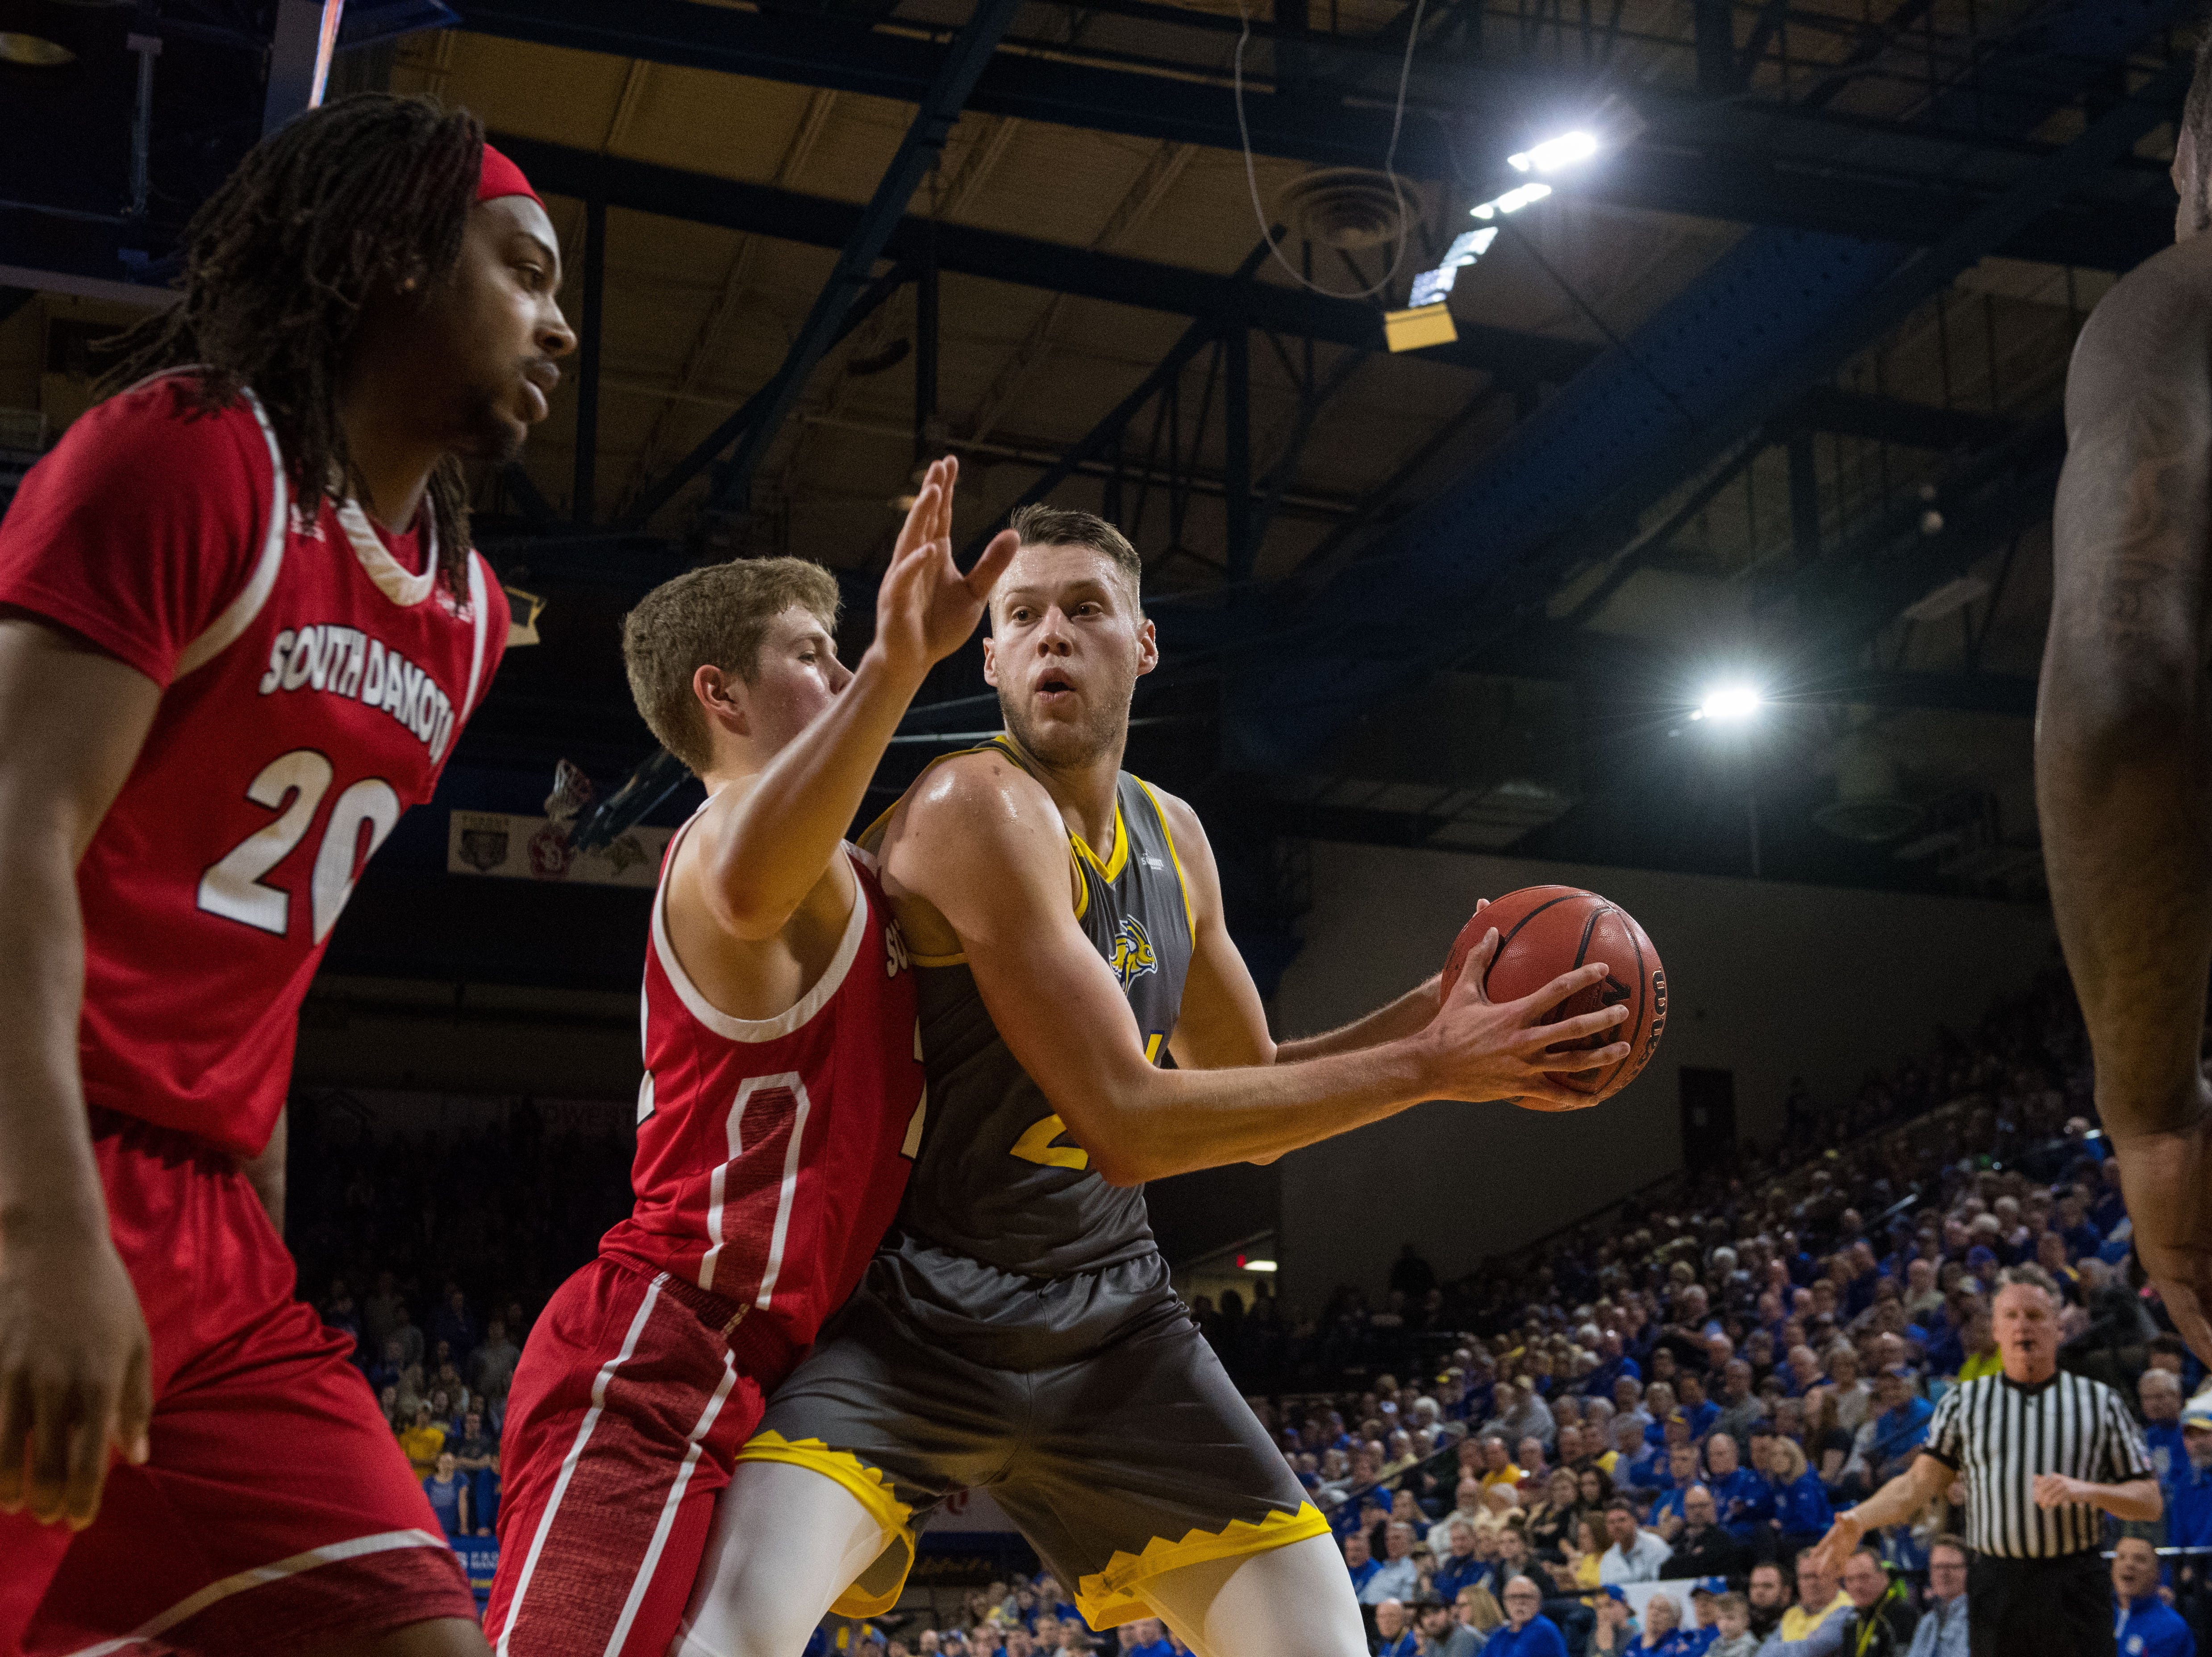 SDSU's Mike Daum (24) looks to pass the ball during a game against USD, Feb. 23, 2019 in Brookings, S.D.